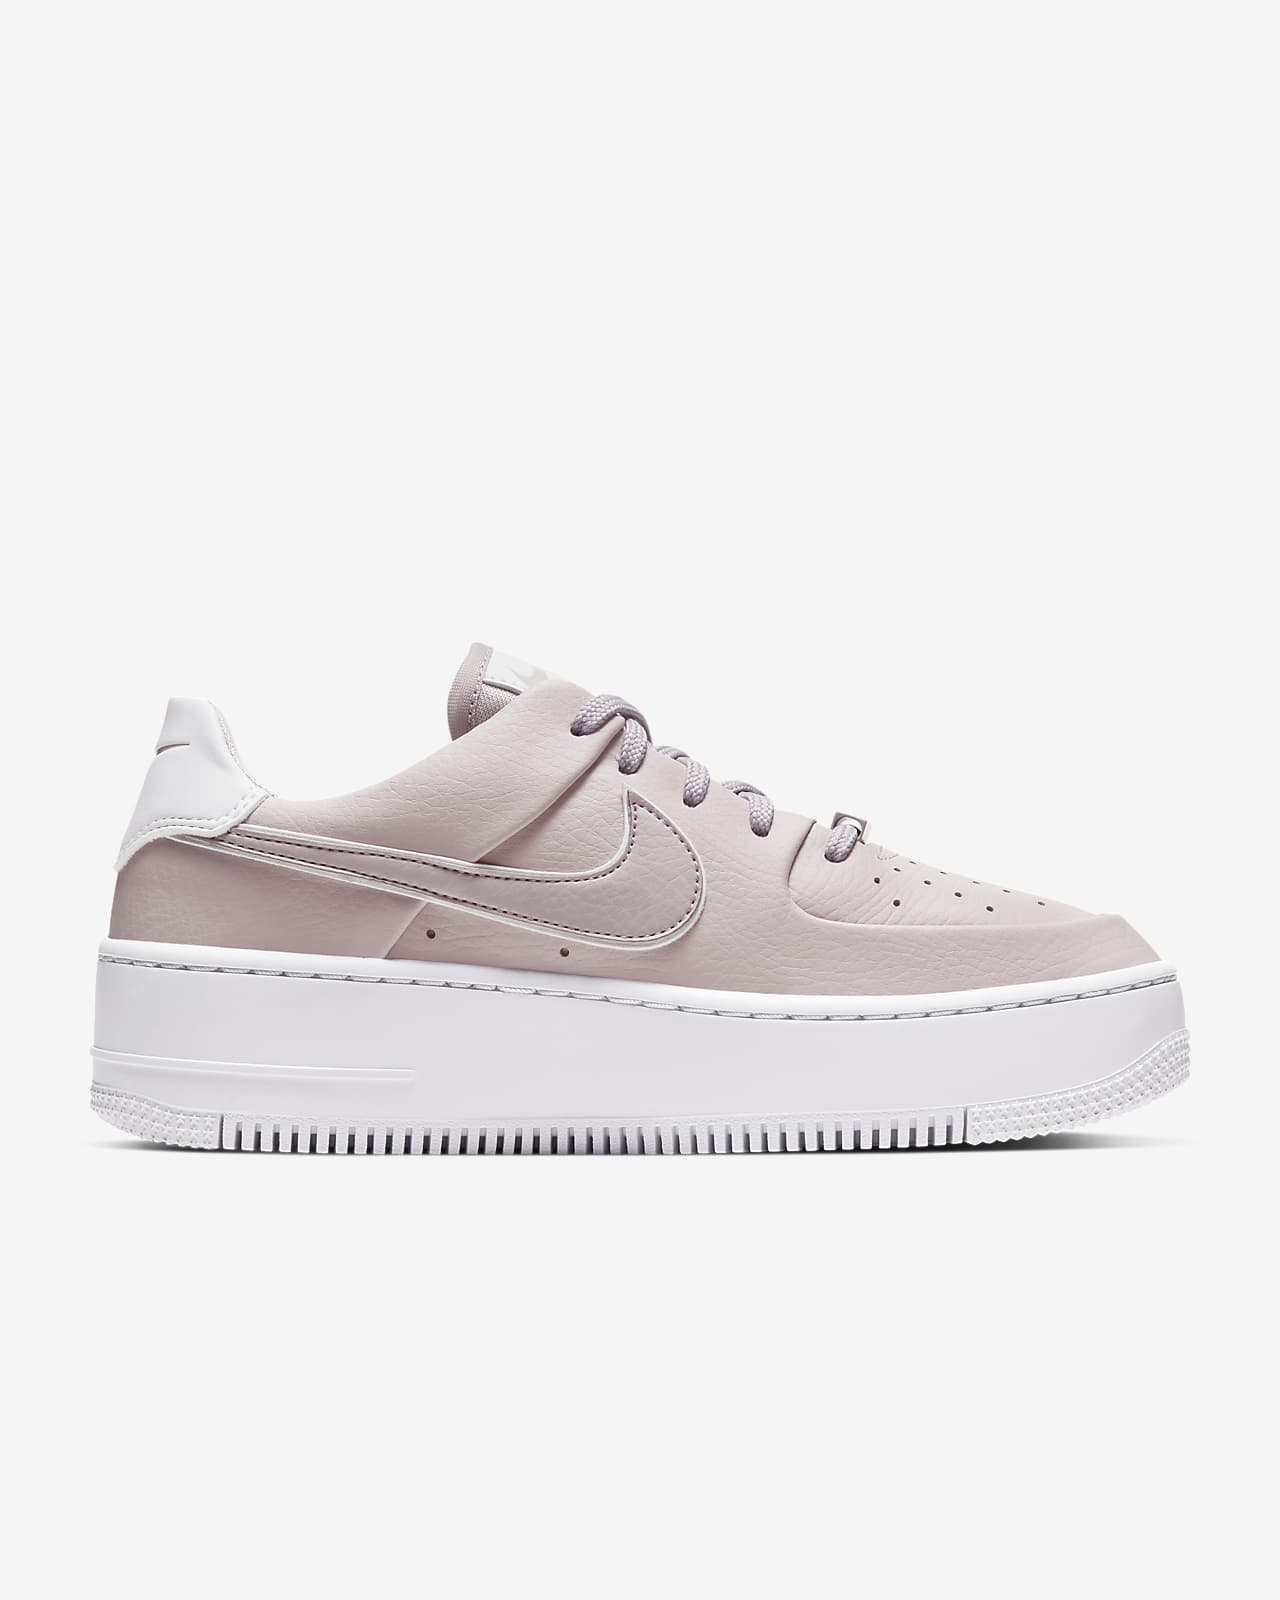 Nike Air Force 1 Sage Low Women S Shoe Nike Id As of 2015, the sneaker was said to be released in. nike air force 1 sage low women s shoe